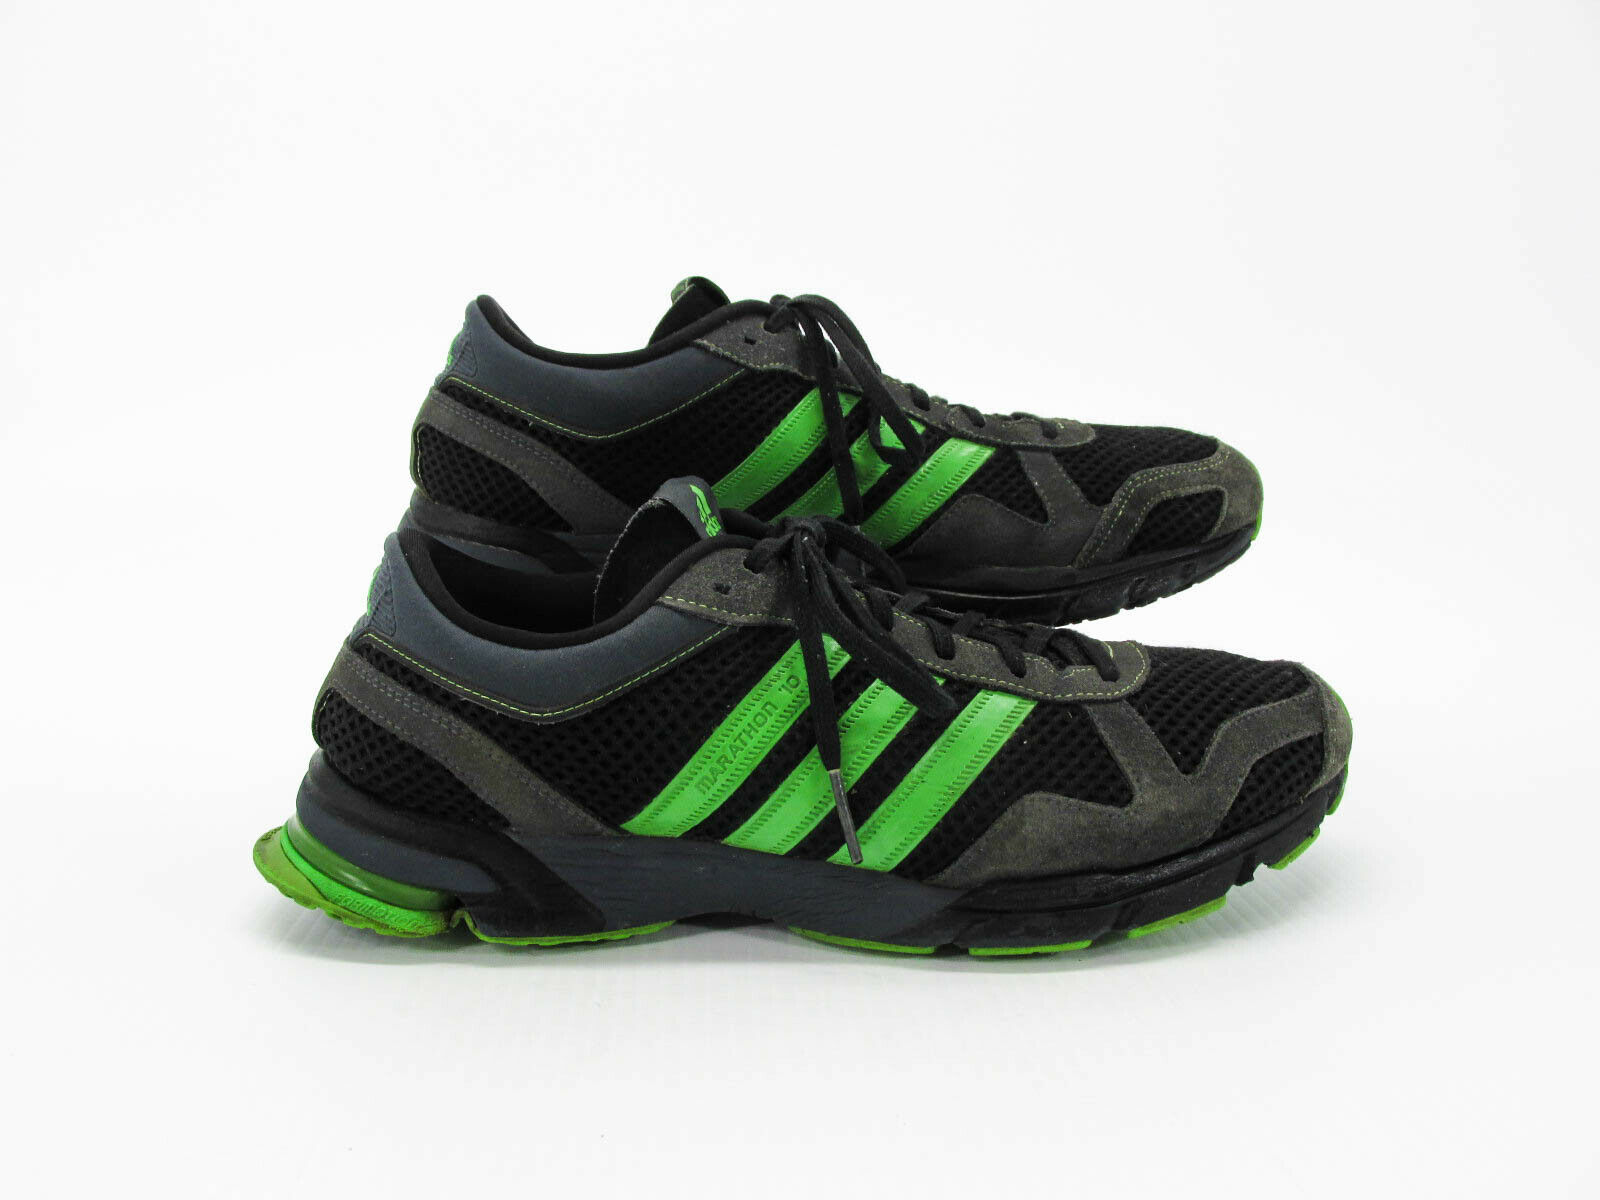 Adidas Marathon 10 Men Athletic Running shoes 11.5M Pre Owned HJ